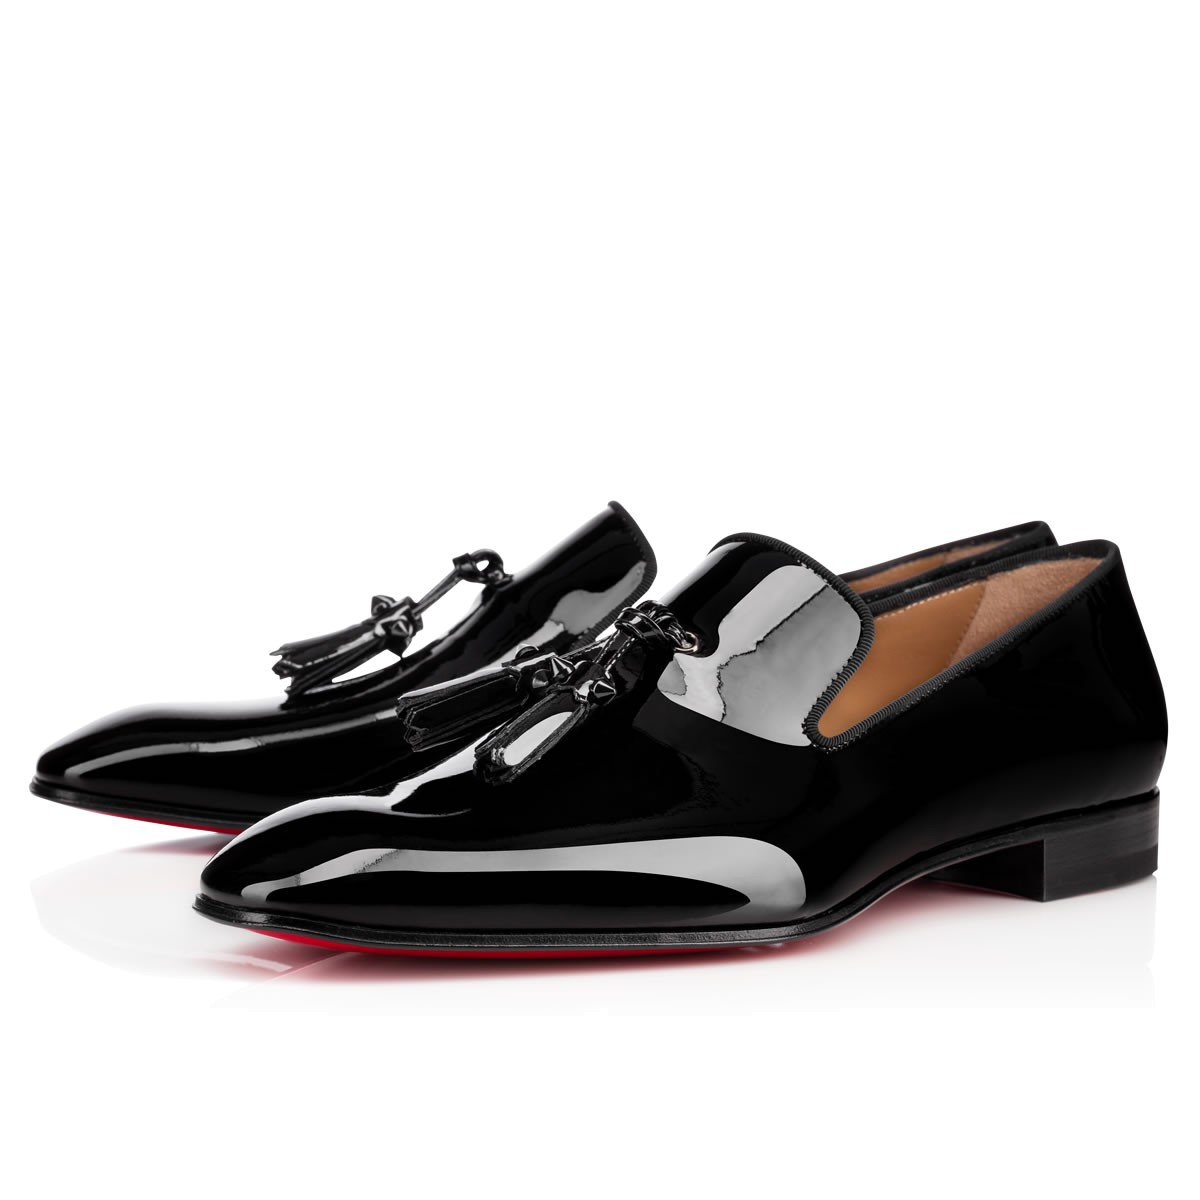 Dandelion Tassel Flat Black Patent Leather - Men Shoes - Christian Louboutin